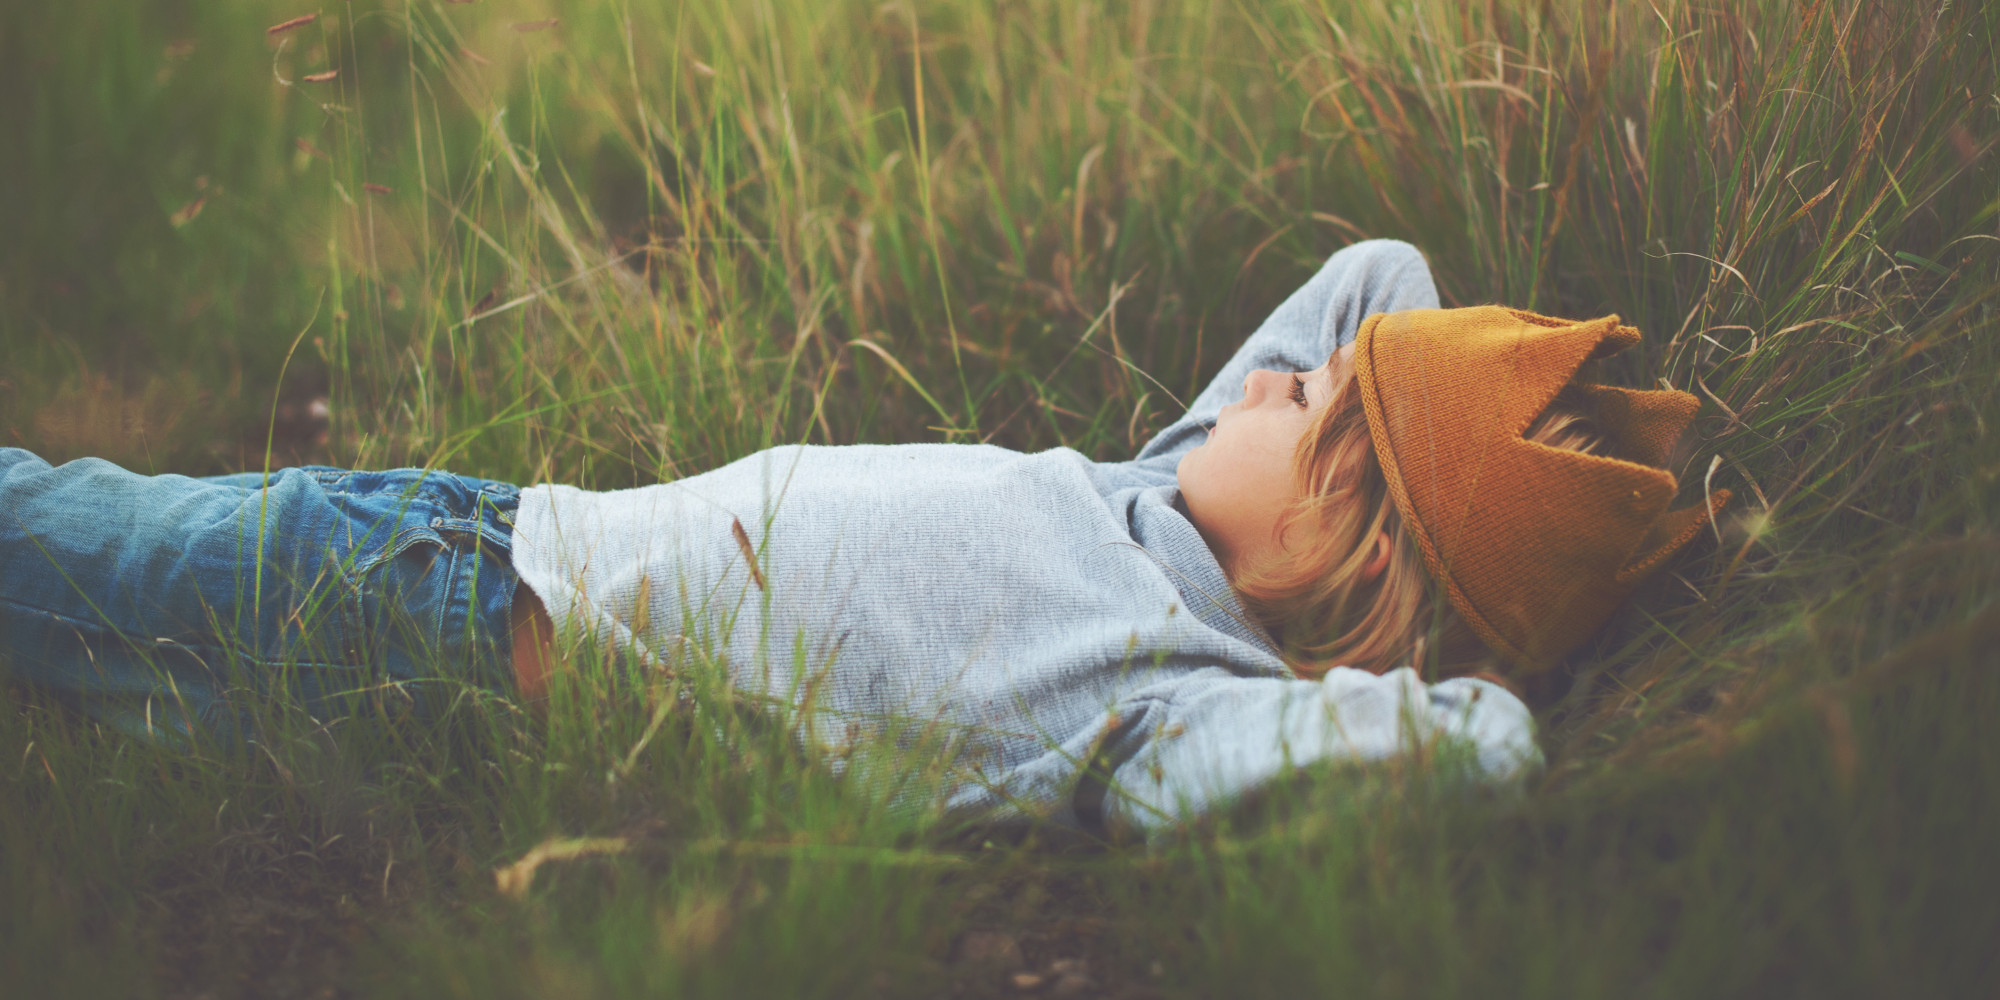 Daydreaming A Skill To Help Us Build Our Dreams  Huffpost